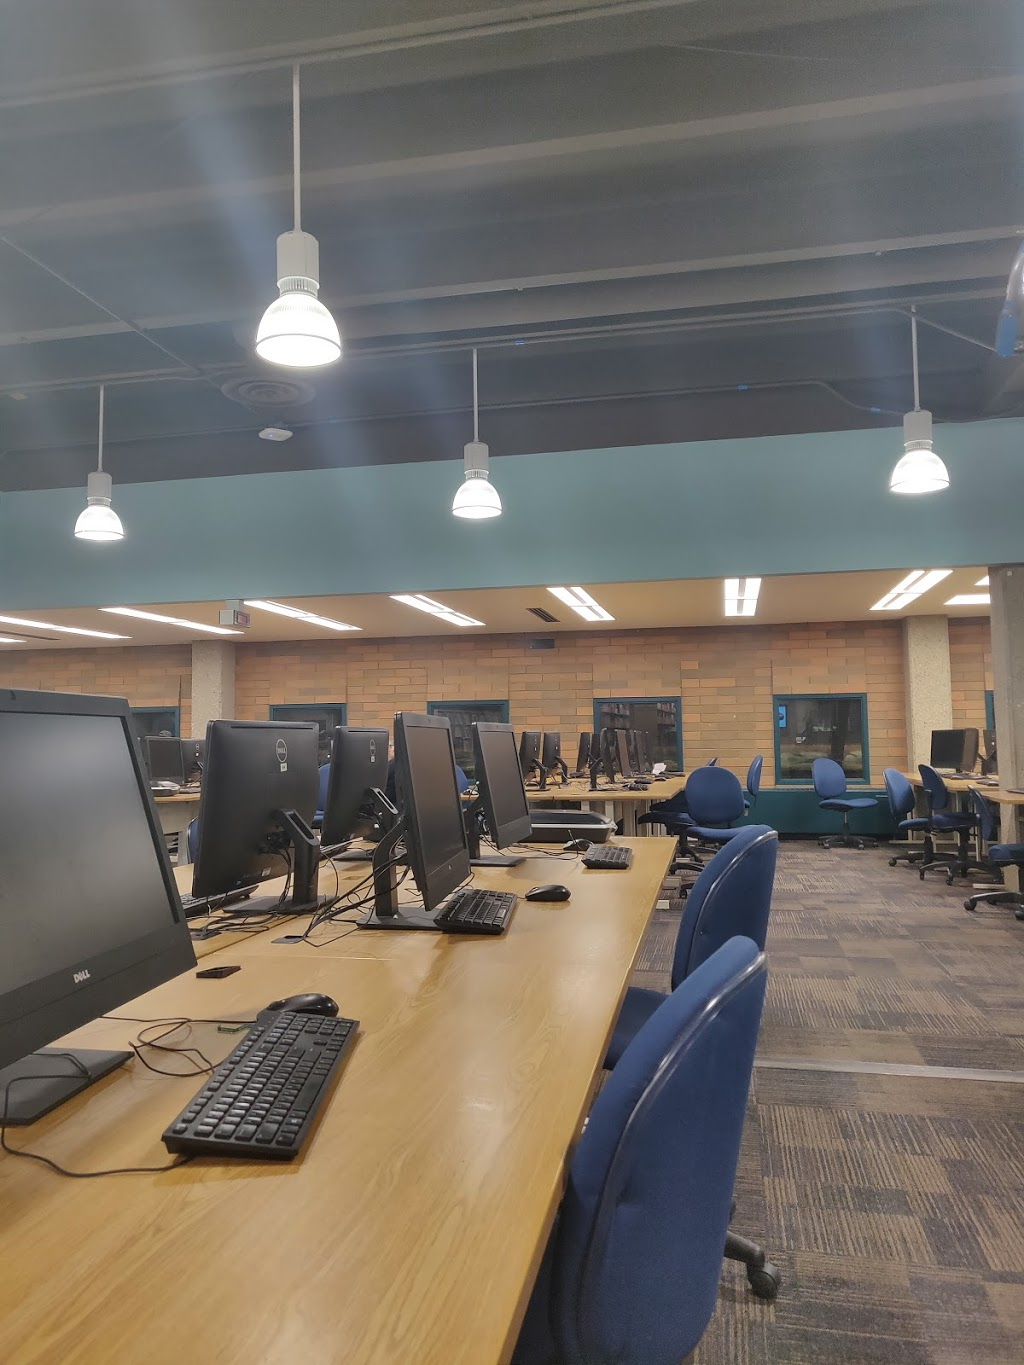 McNally Library | library | 11762 106 St u310, Edmonton, AB T5G 2R1, Canada | 7804718777 OR +1 780-471-8777